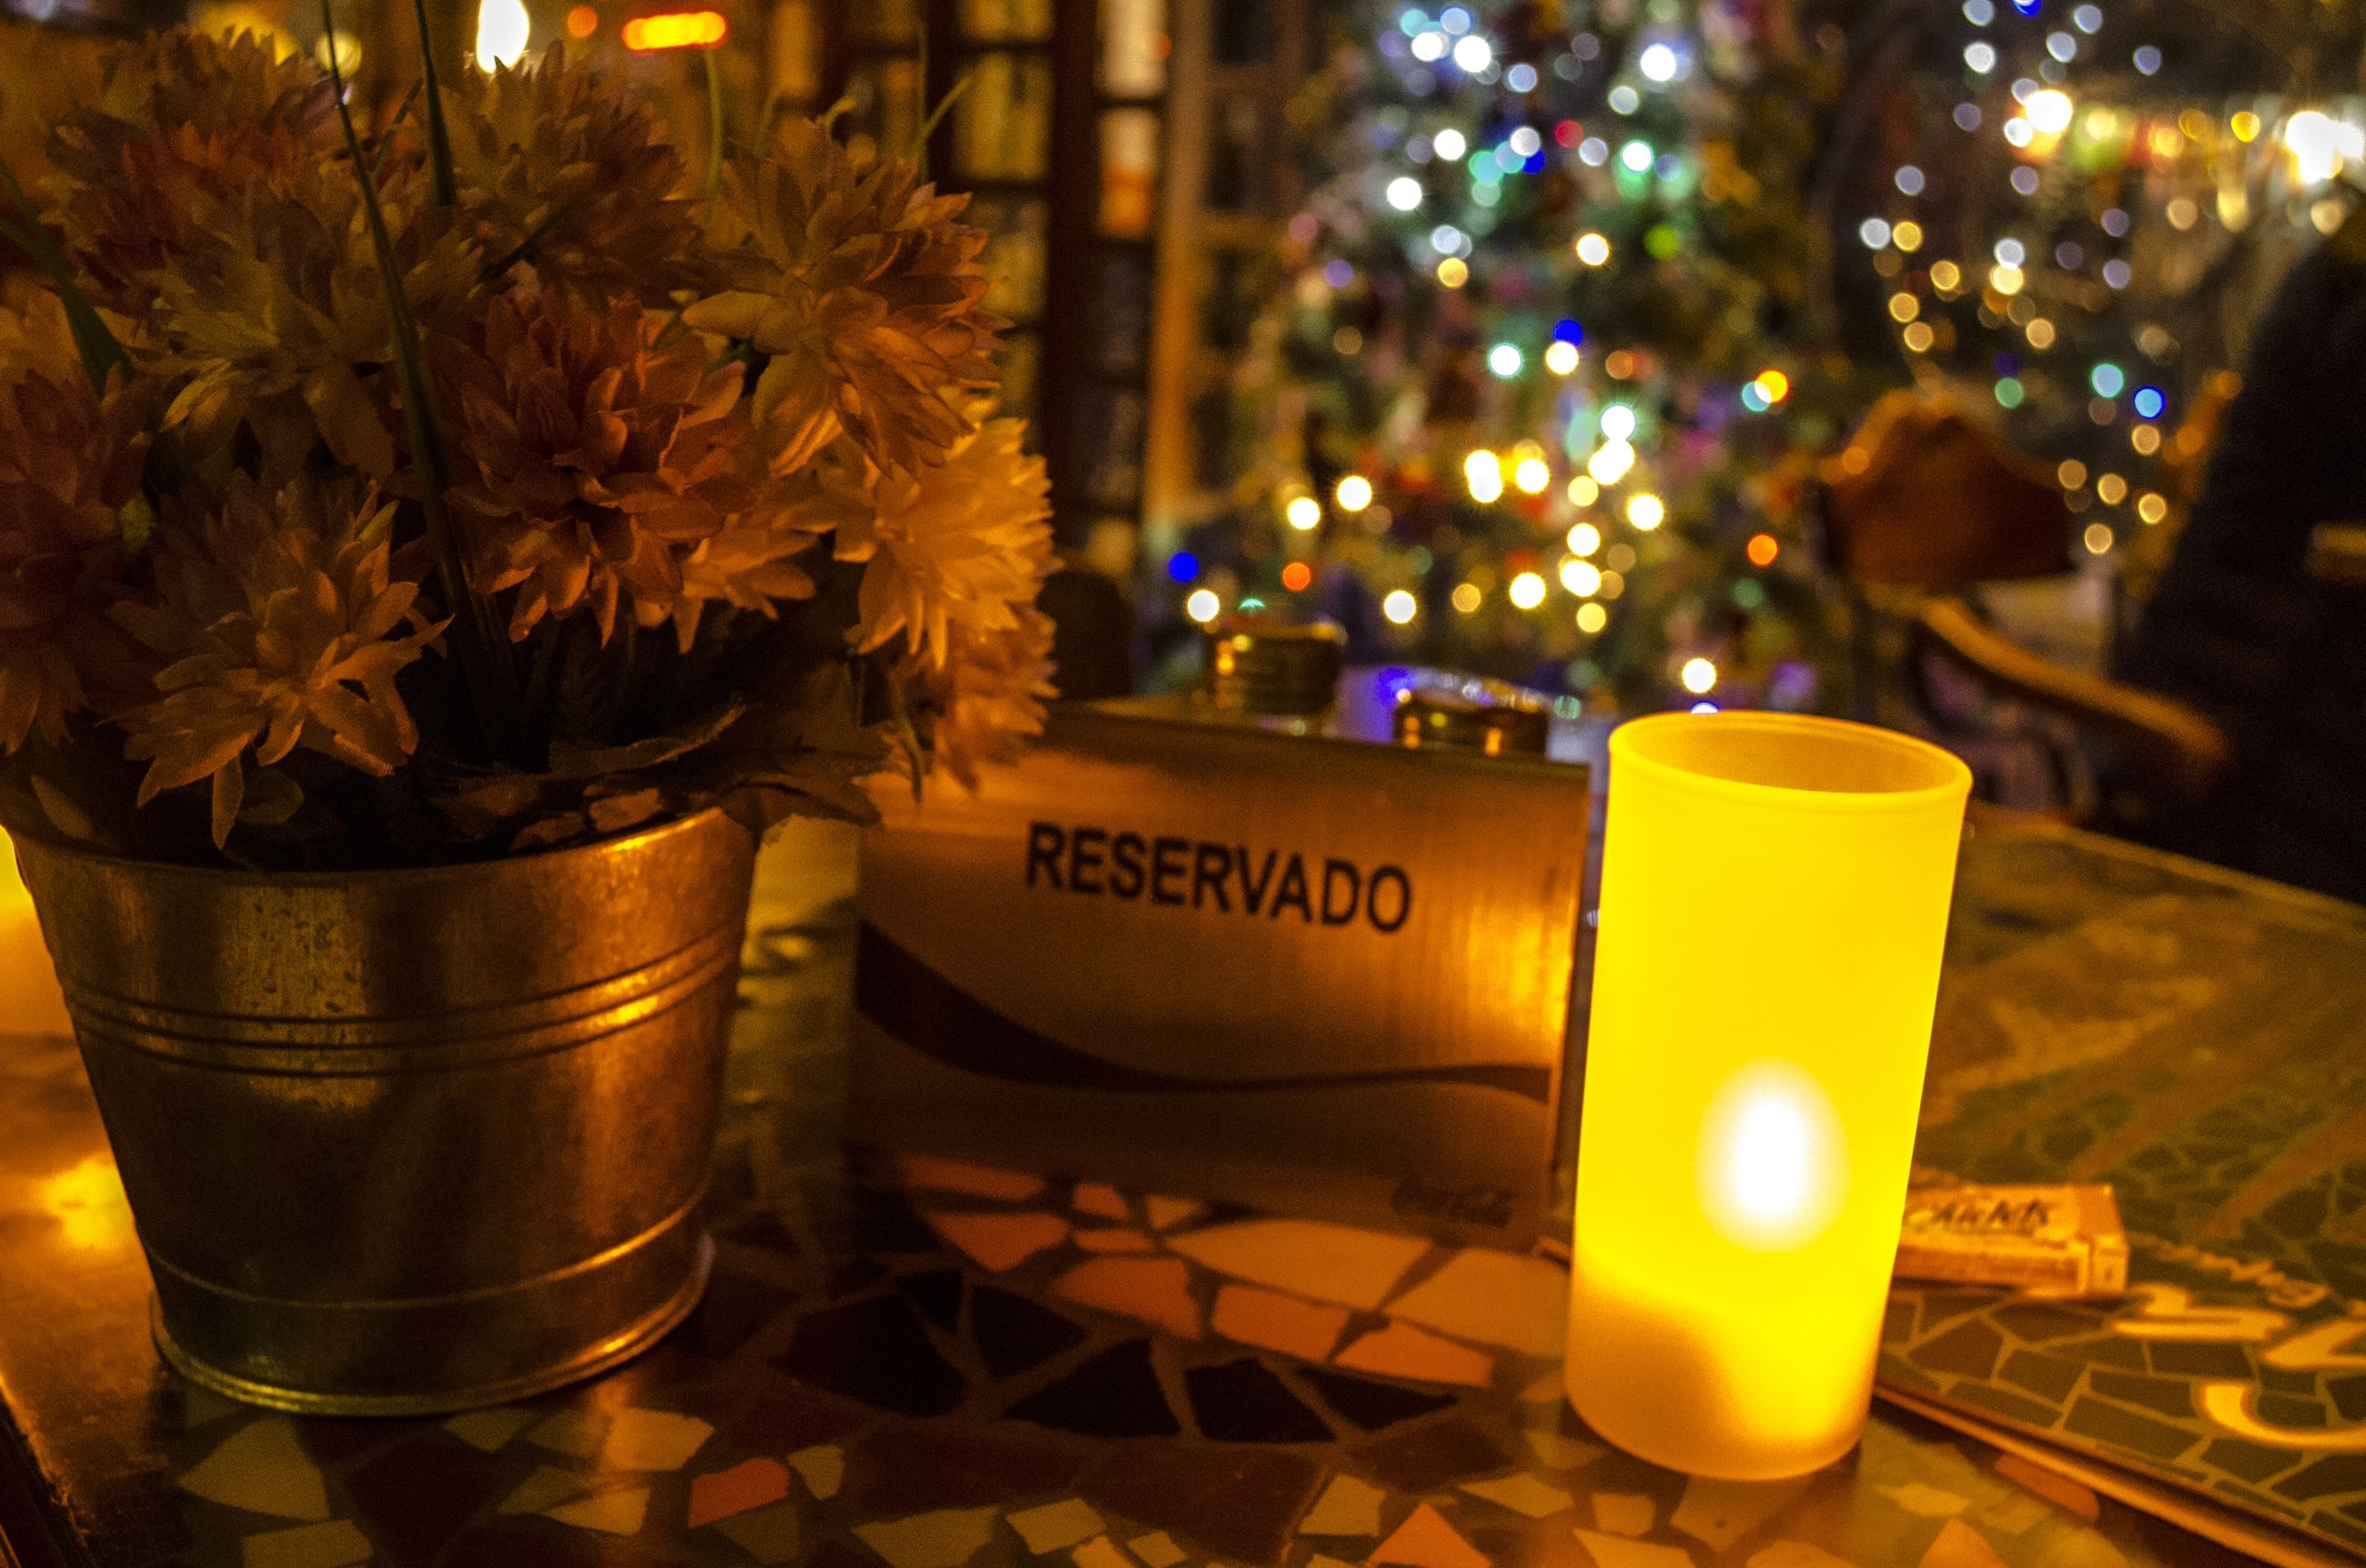 drink, illuminated, text, food and drink, table, focus on foreground, close-up, tree, communication, night, refreshment, western script, yellow, glass - material, restaurant, no people, candle, outdoors, growth